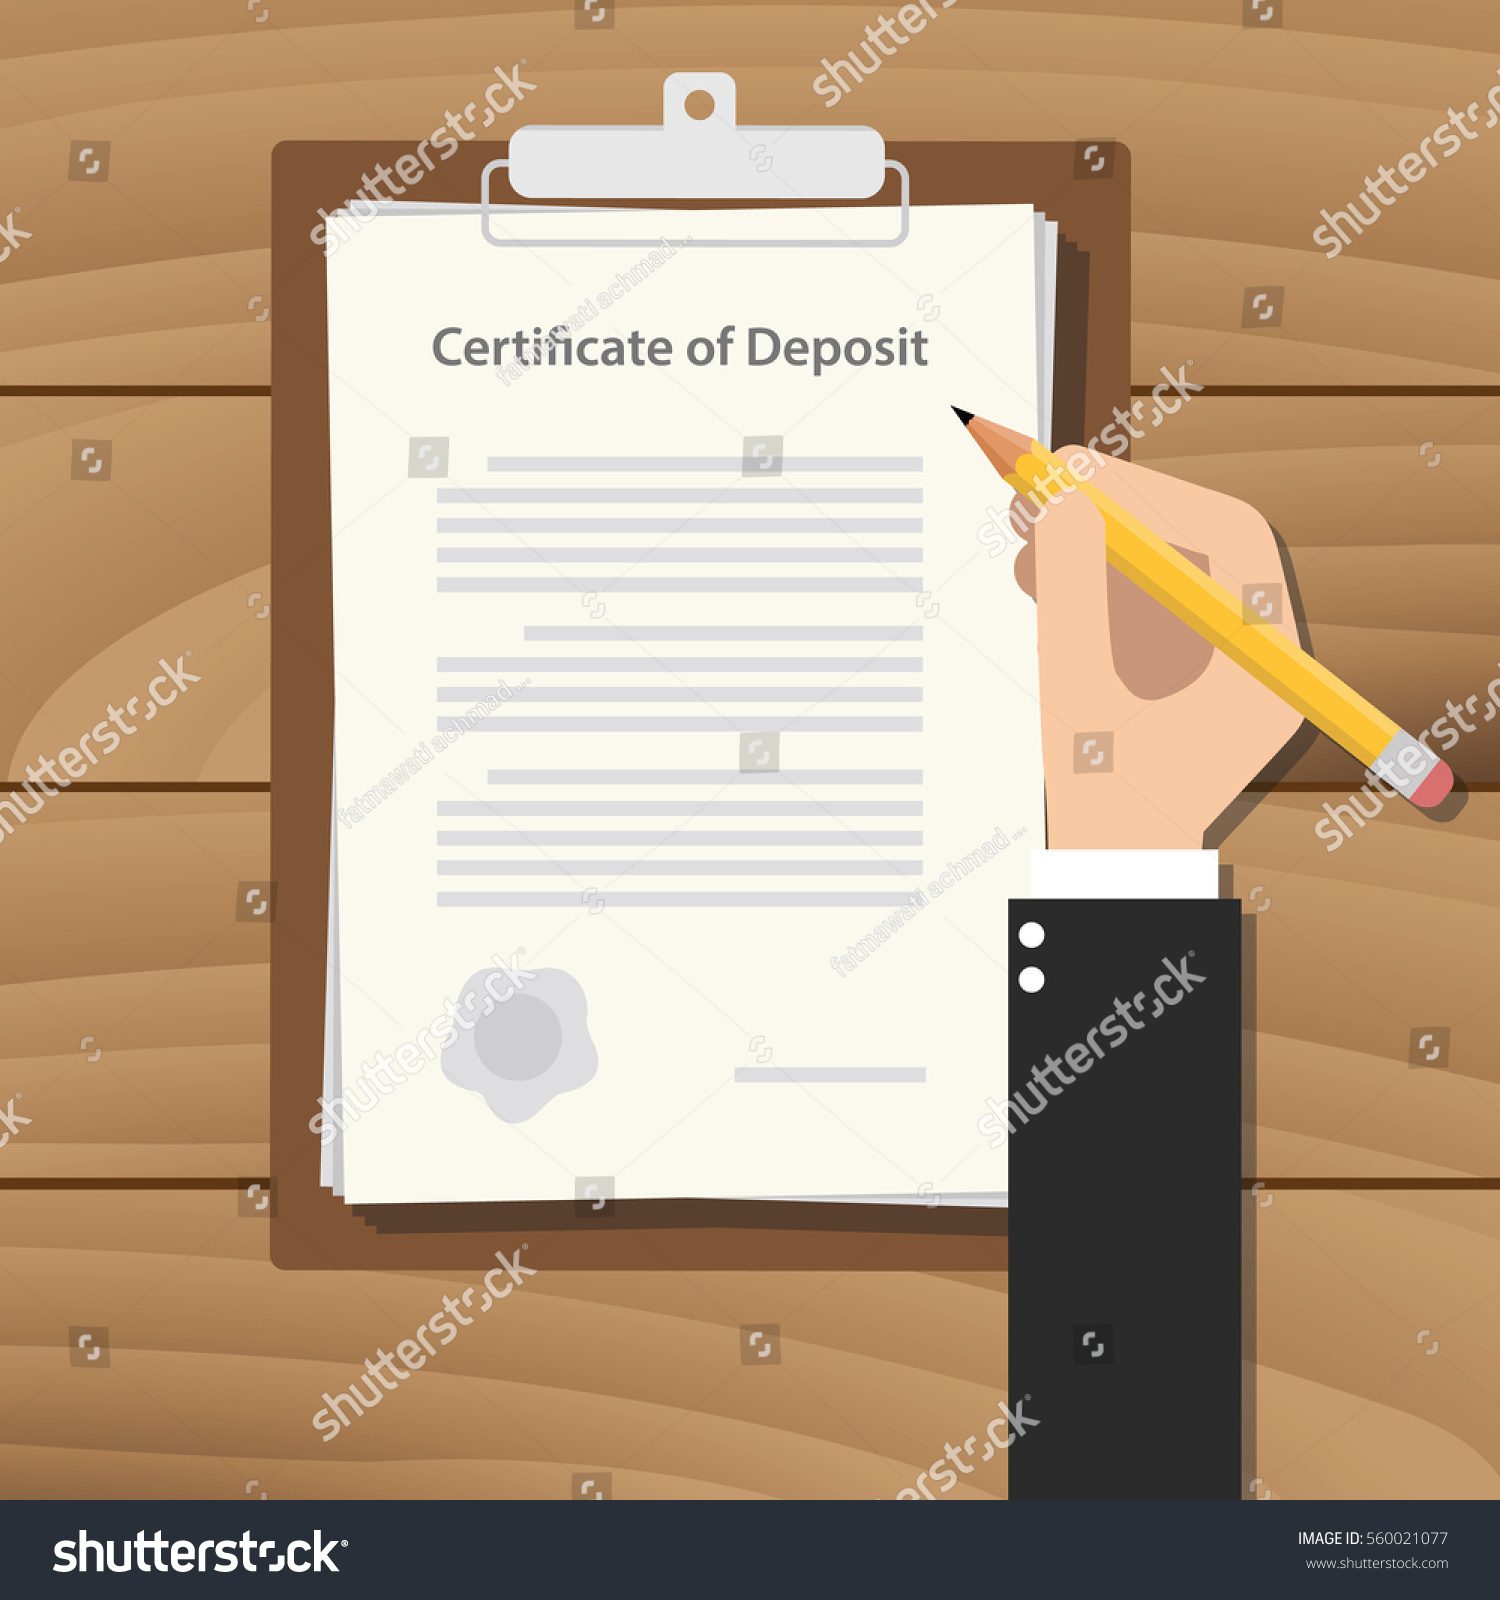 Certificate deposit illustration concept hand business stock certificate of deposit illustration concept with hand business man signing a paperwork document on top of 1betcityfo Images